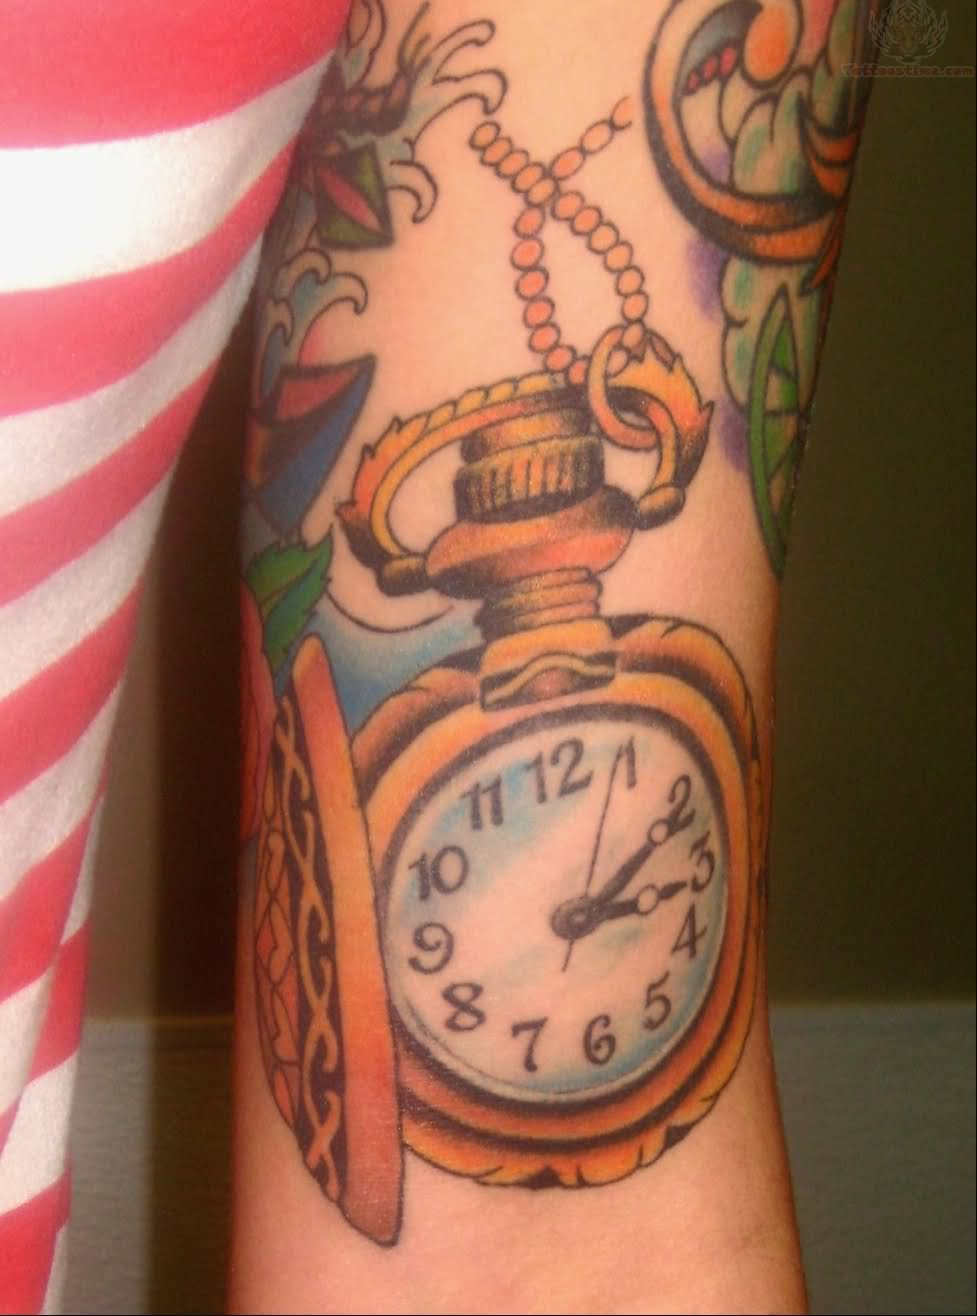 Pocket Watch Tattoos Designs, Ideas and Meaning | Tattoos ...